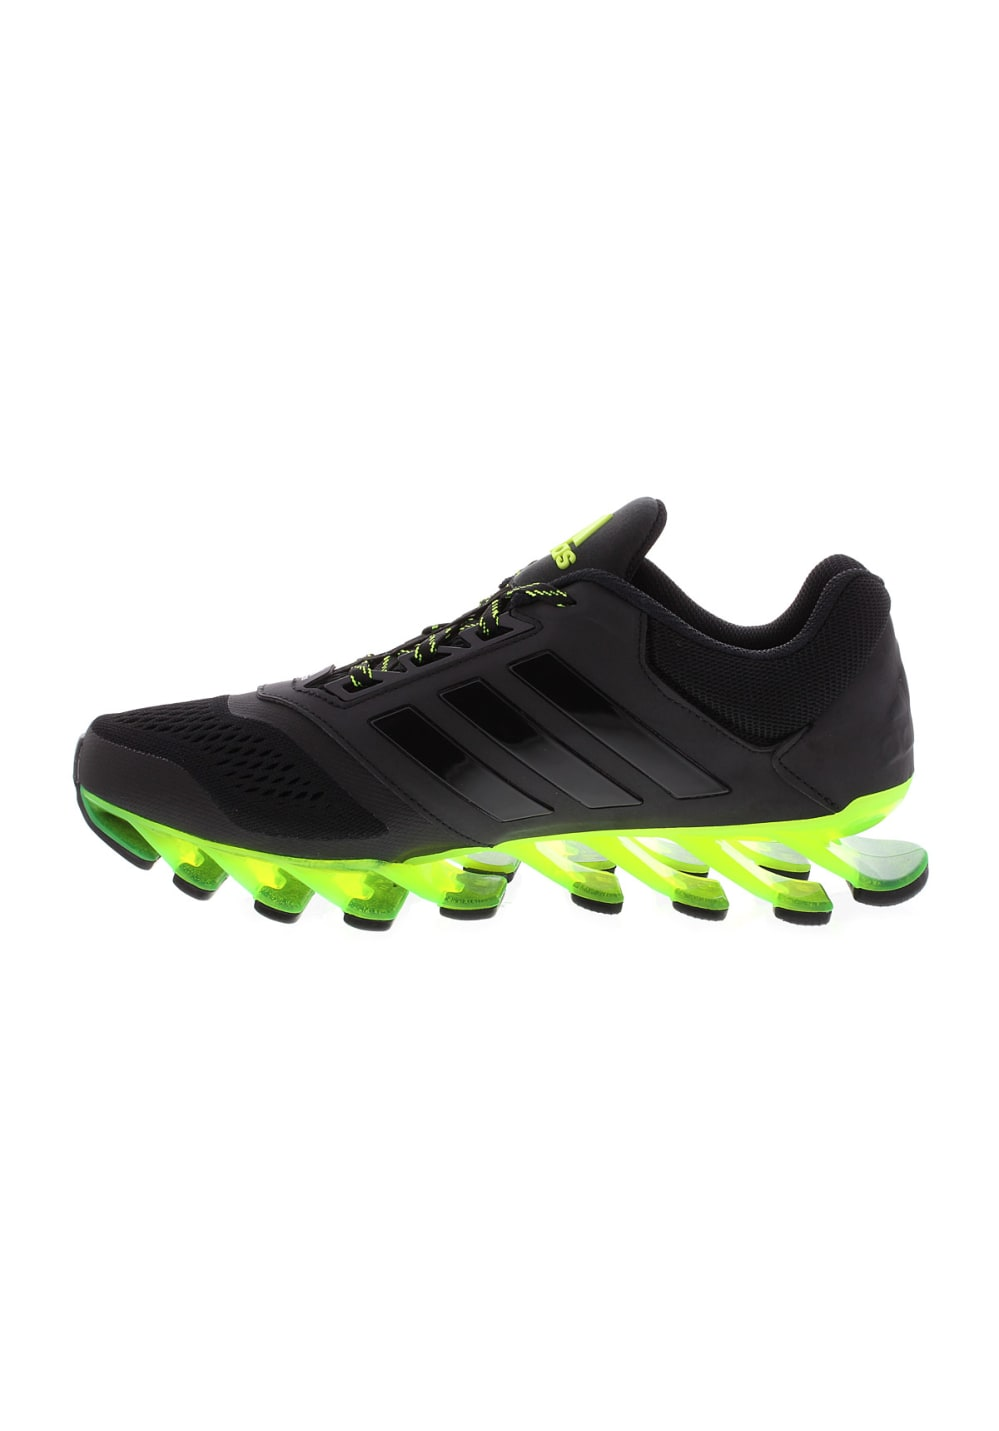 newest 48a64 b8912 adidas Springblade Drive 2 J - Running shoes - Black